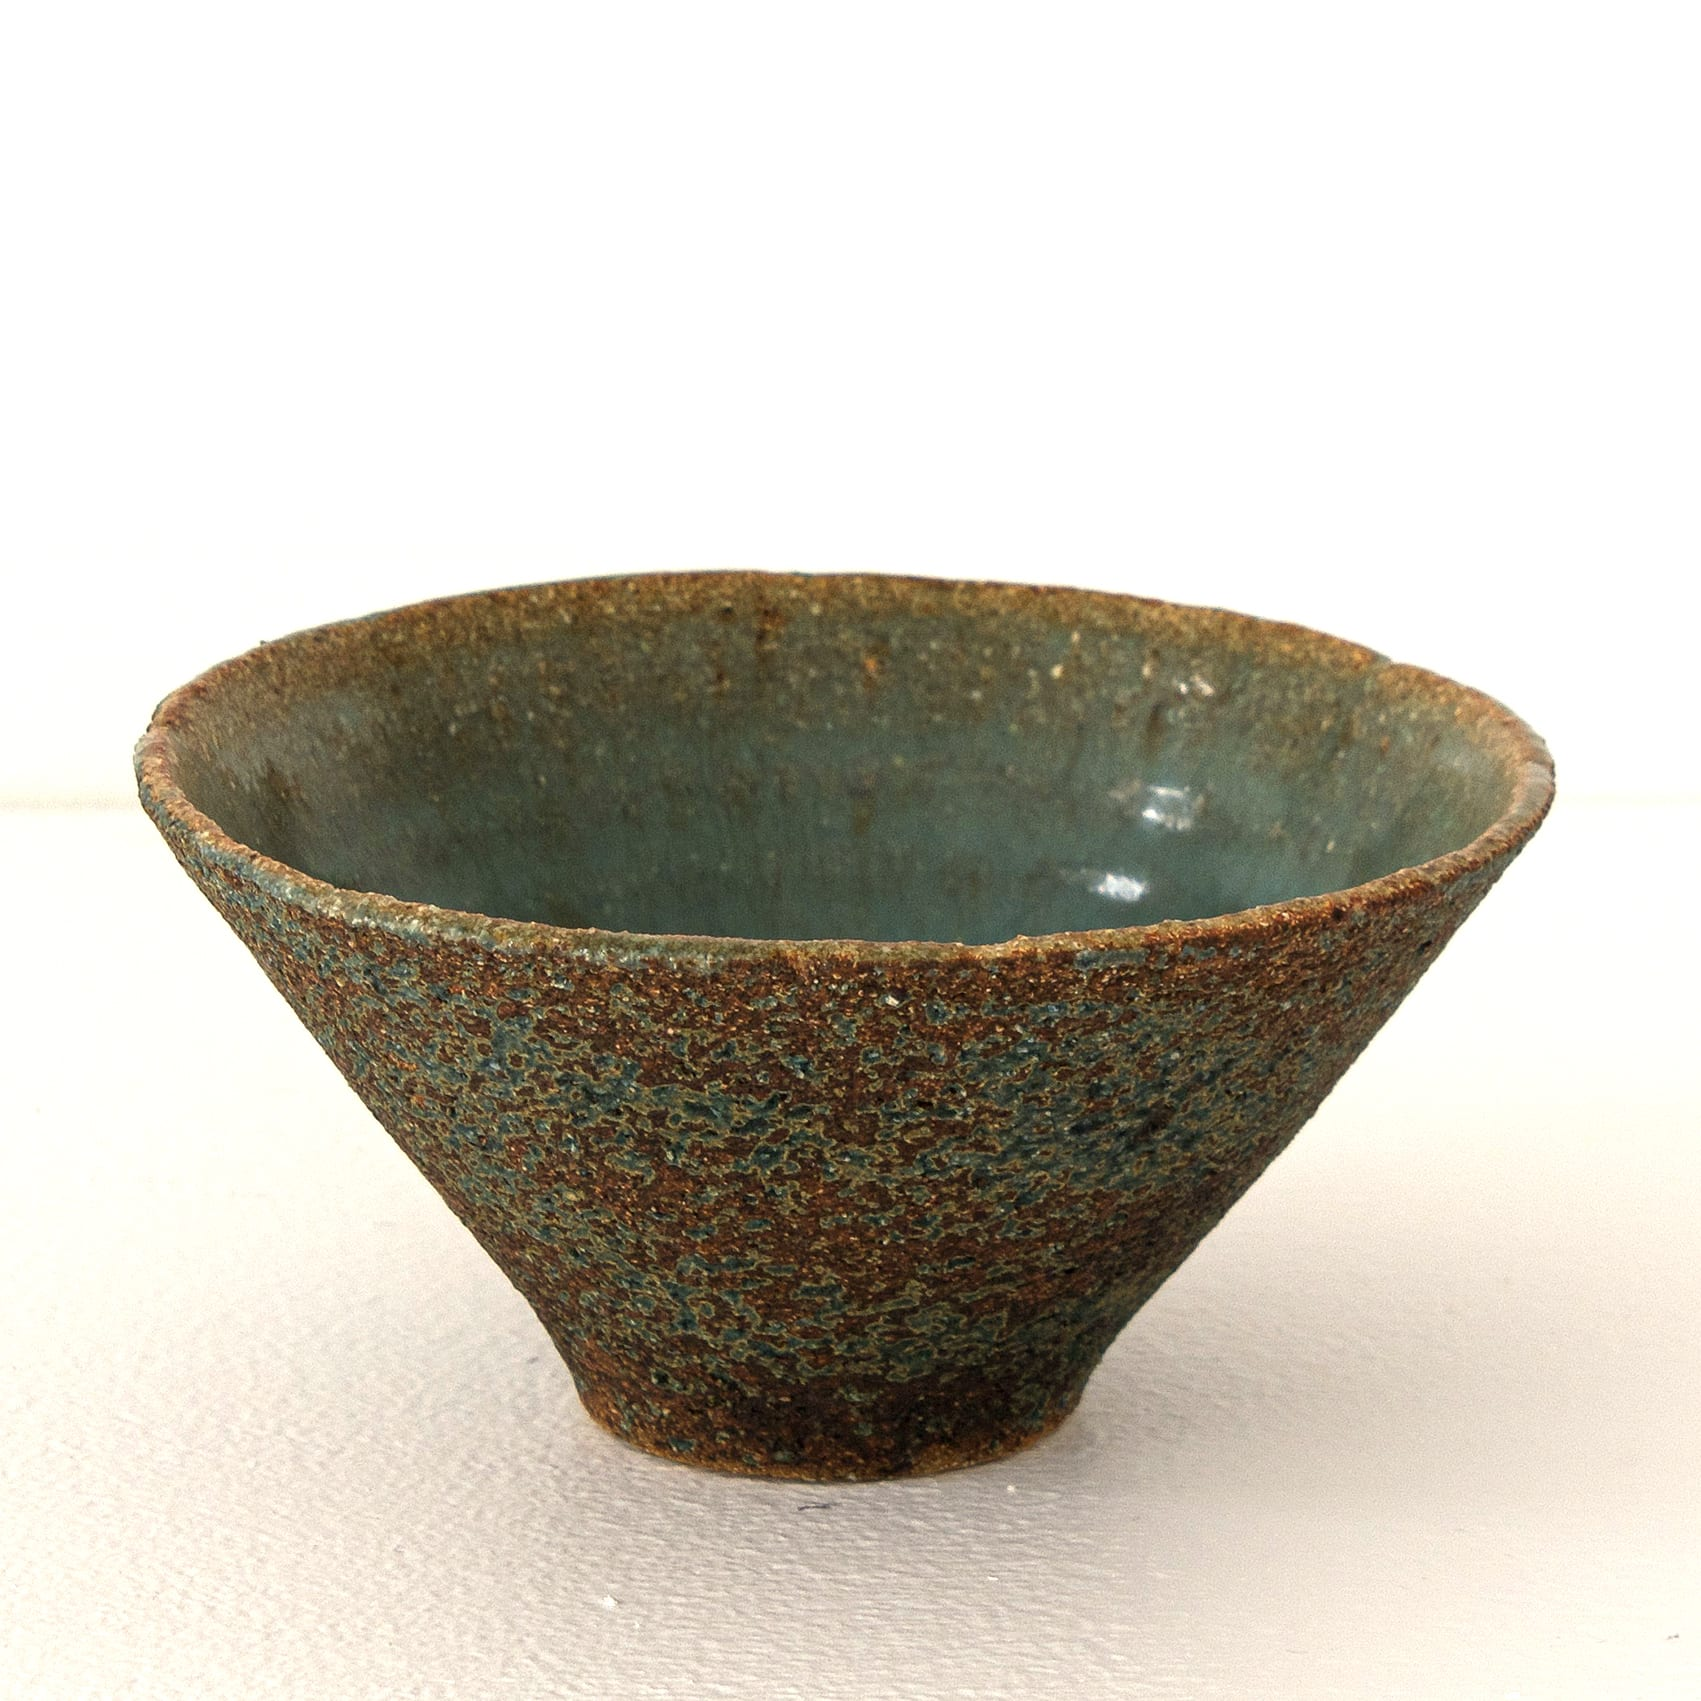 """<span class=""""link fancybox-details-link""""><a href=""""/artists/410-sotis-filippides/works/7704-sotis-filippides-small-bowl-2021/"""">View Detail Page</a></span><div class=""""artist""""><strong>Sotis Filippides</strong></div> <div class=""""title""""><em>Small Bowl</em>, 2021</div> <div class=""""signed_and_dated"""">impressed to the base with the artist's seal mark</div> <div class=""""medium"""">thrown stoneware</div> <div class=""""dimensions"""">h. 6 x dia. 12.5 cm</div><div class=""""copyright_line"""">Own Art: £6.60 x 10 Months, 0% APR</div>"""